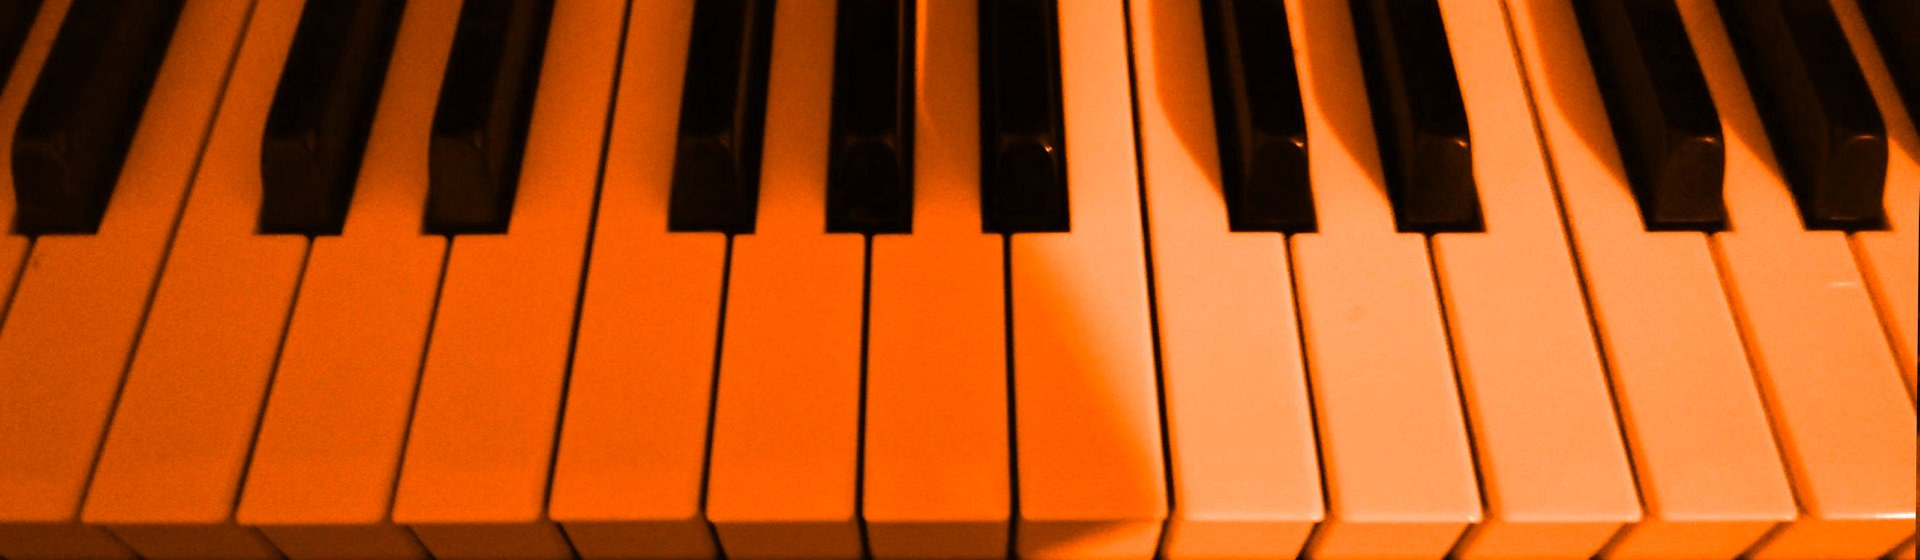 Piano or Music Theory Lessons